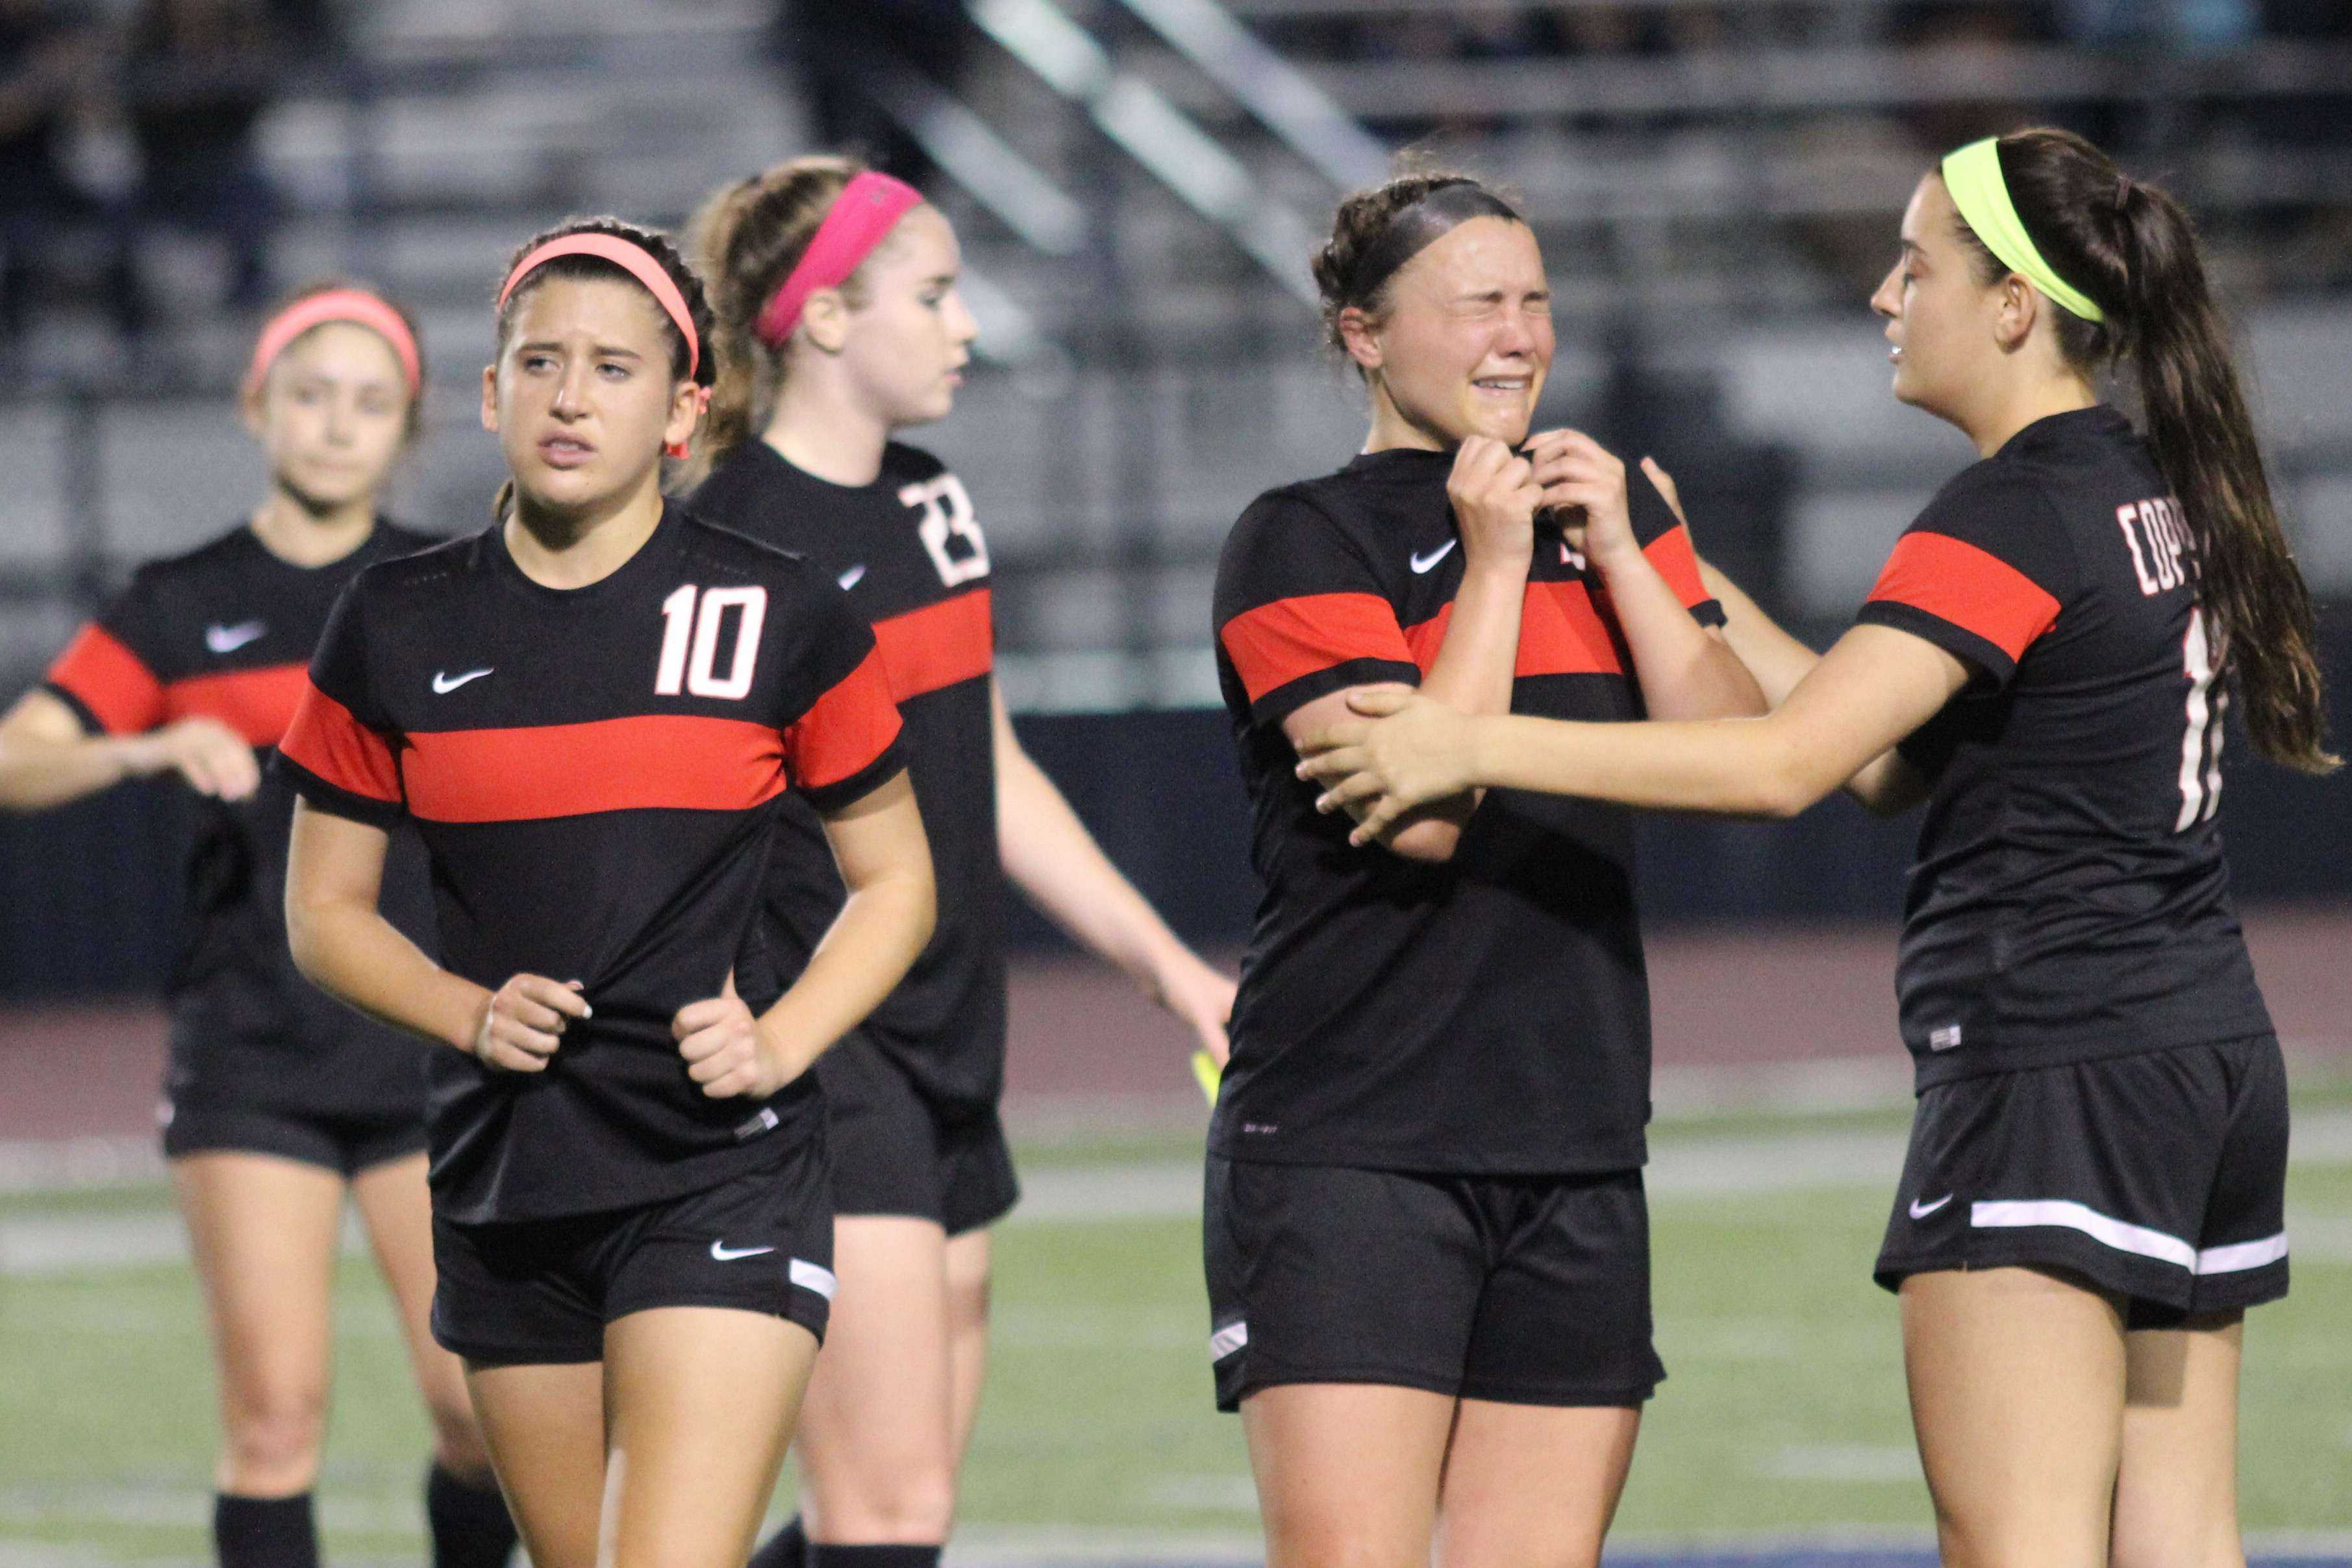 Coppell High School freshman defender Haley Roberson, senior forward Tori Teffeteller, senior defender Sarah Houchin and sophomore midfielder Mary Ziperman all accept defeat after their 1-0 loss to the Sachse Lady Mustangs at Ron Poe Stadium. After a weather delay that lasted over an hour, the Cowgirls could not pull out a victory in the Class 6A Region II quarterfinals.